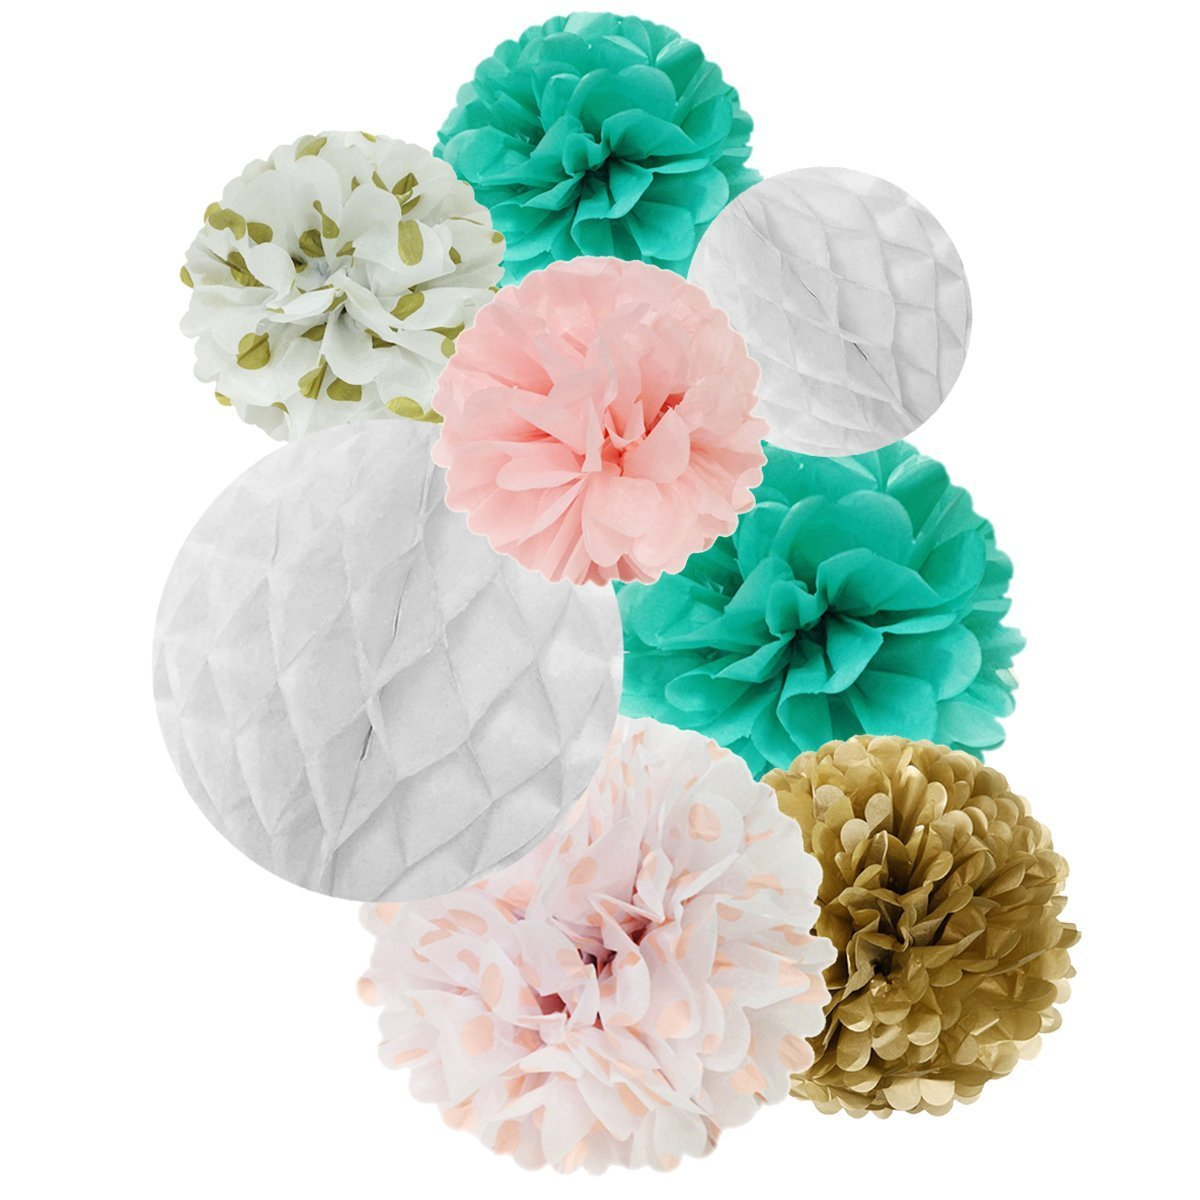 Wrapables® Set of 32 Tissue Honeycomb Ball and Pom Pom Party Decorations for Weddings, Birthday Parties Baby Showers and Nursery Décor, Aqua/ Light Pink/ Gold/ White